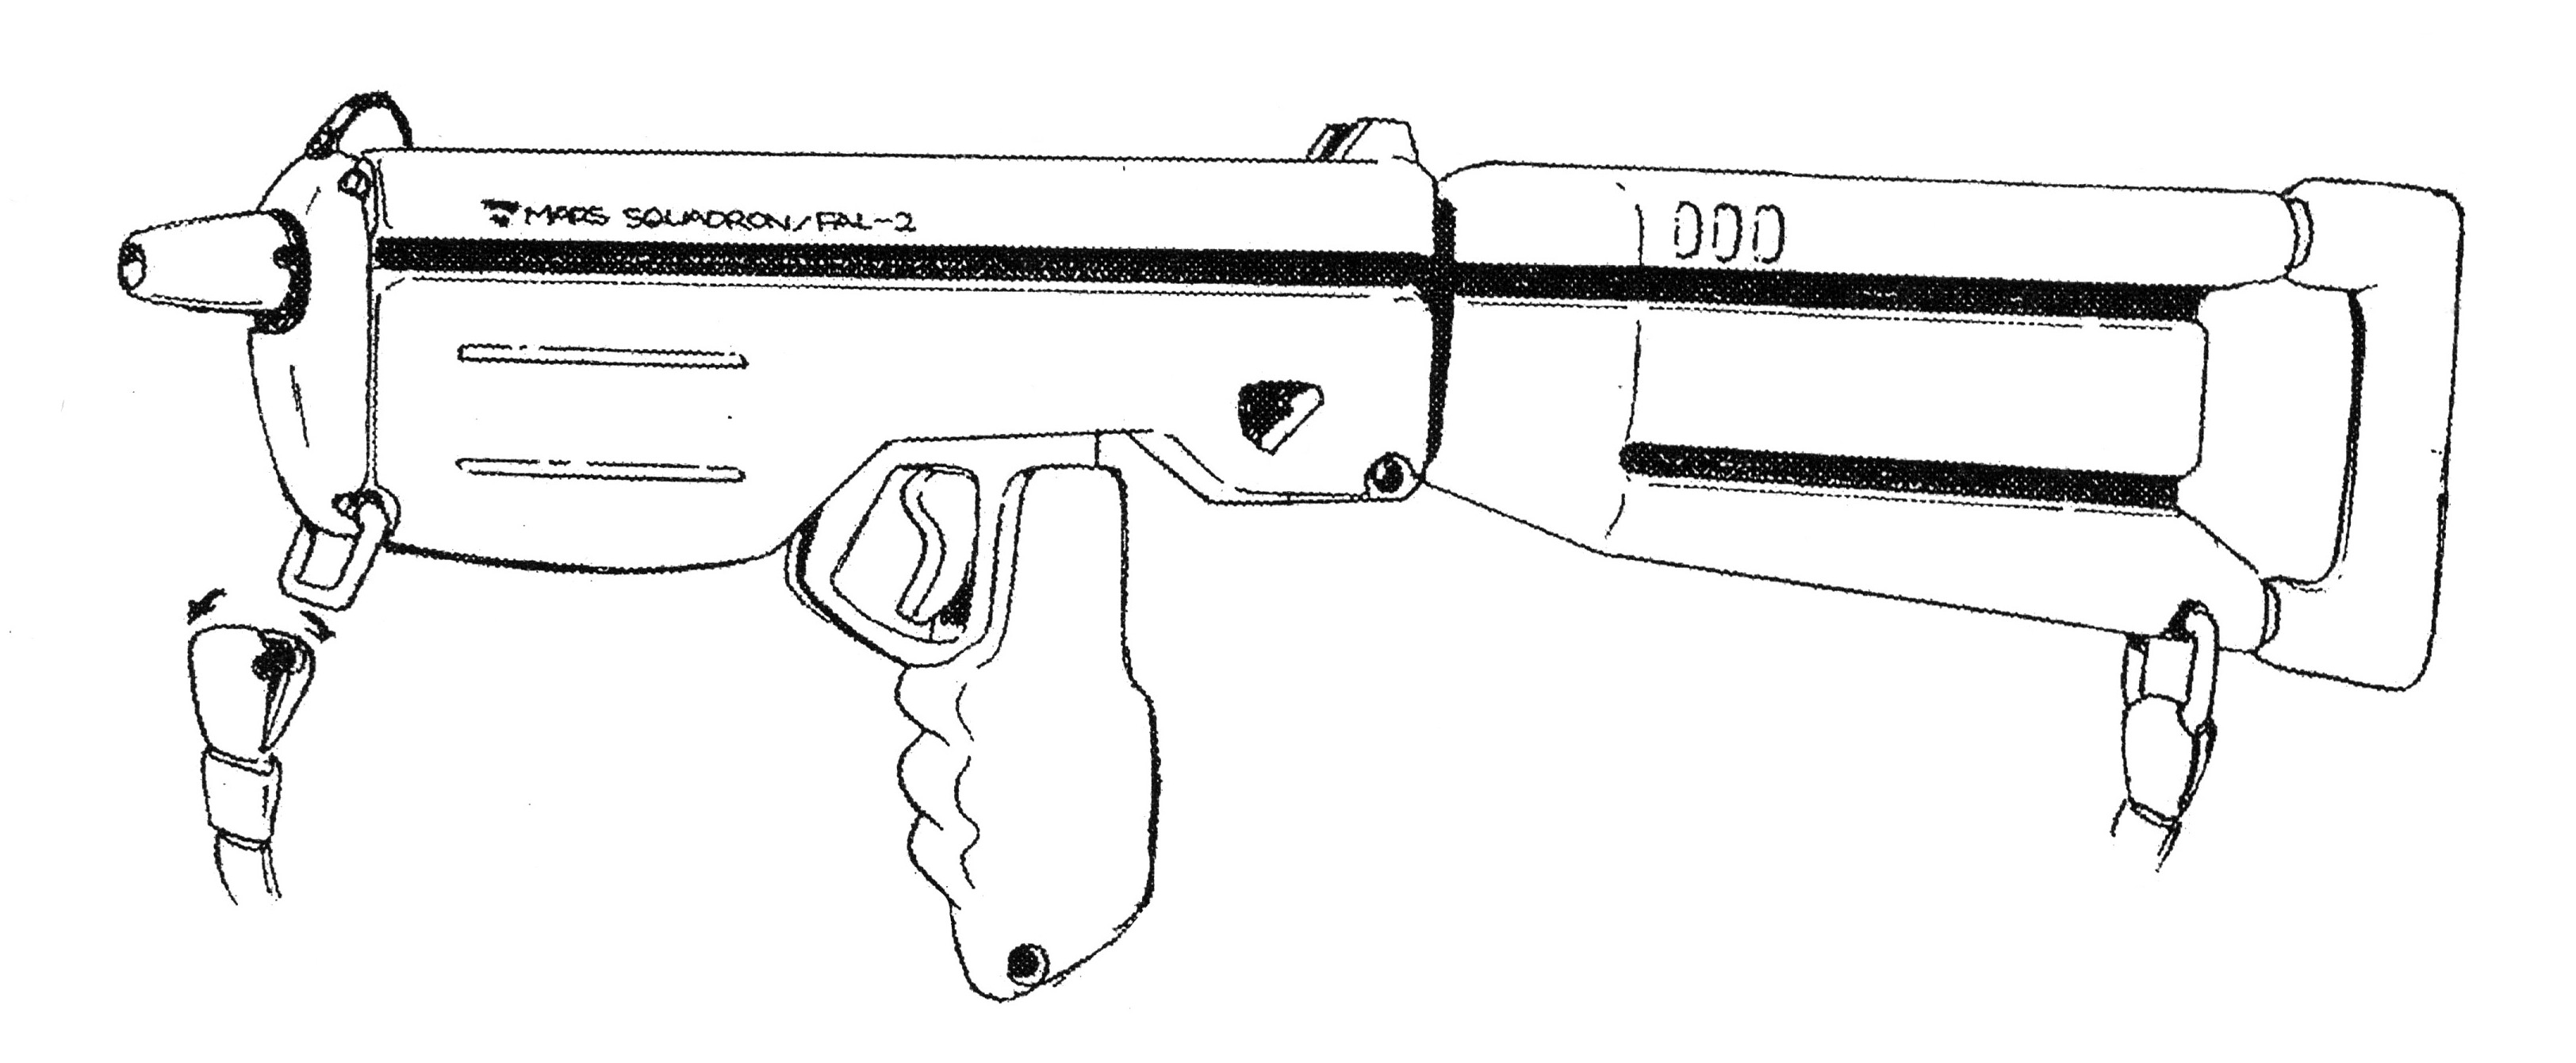 fal-2-pulse-laser-rifle-1